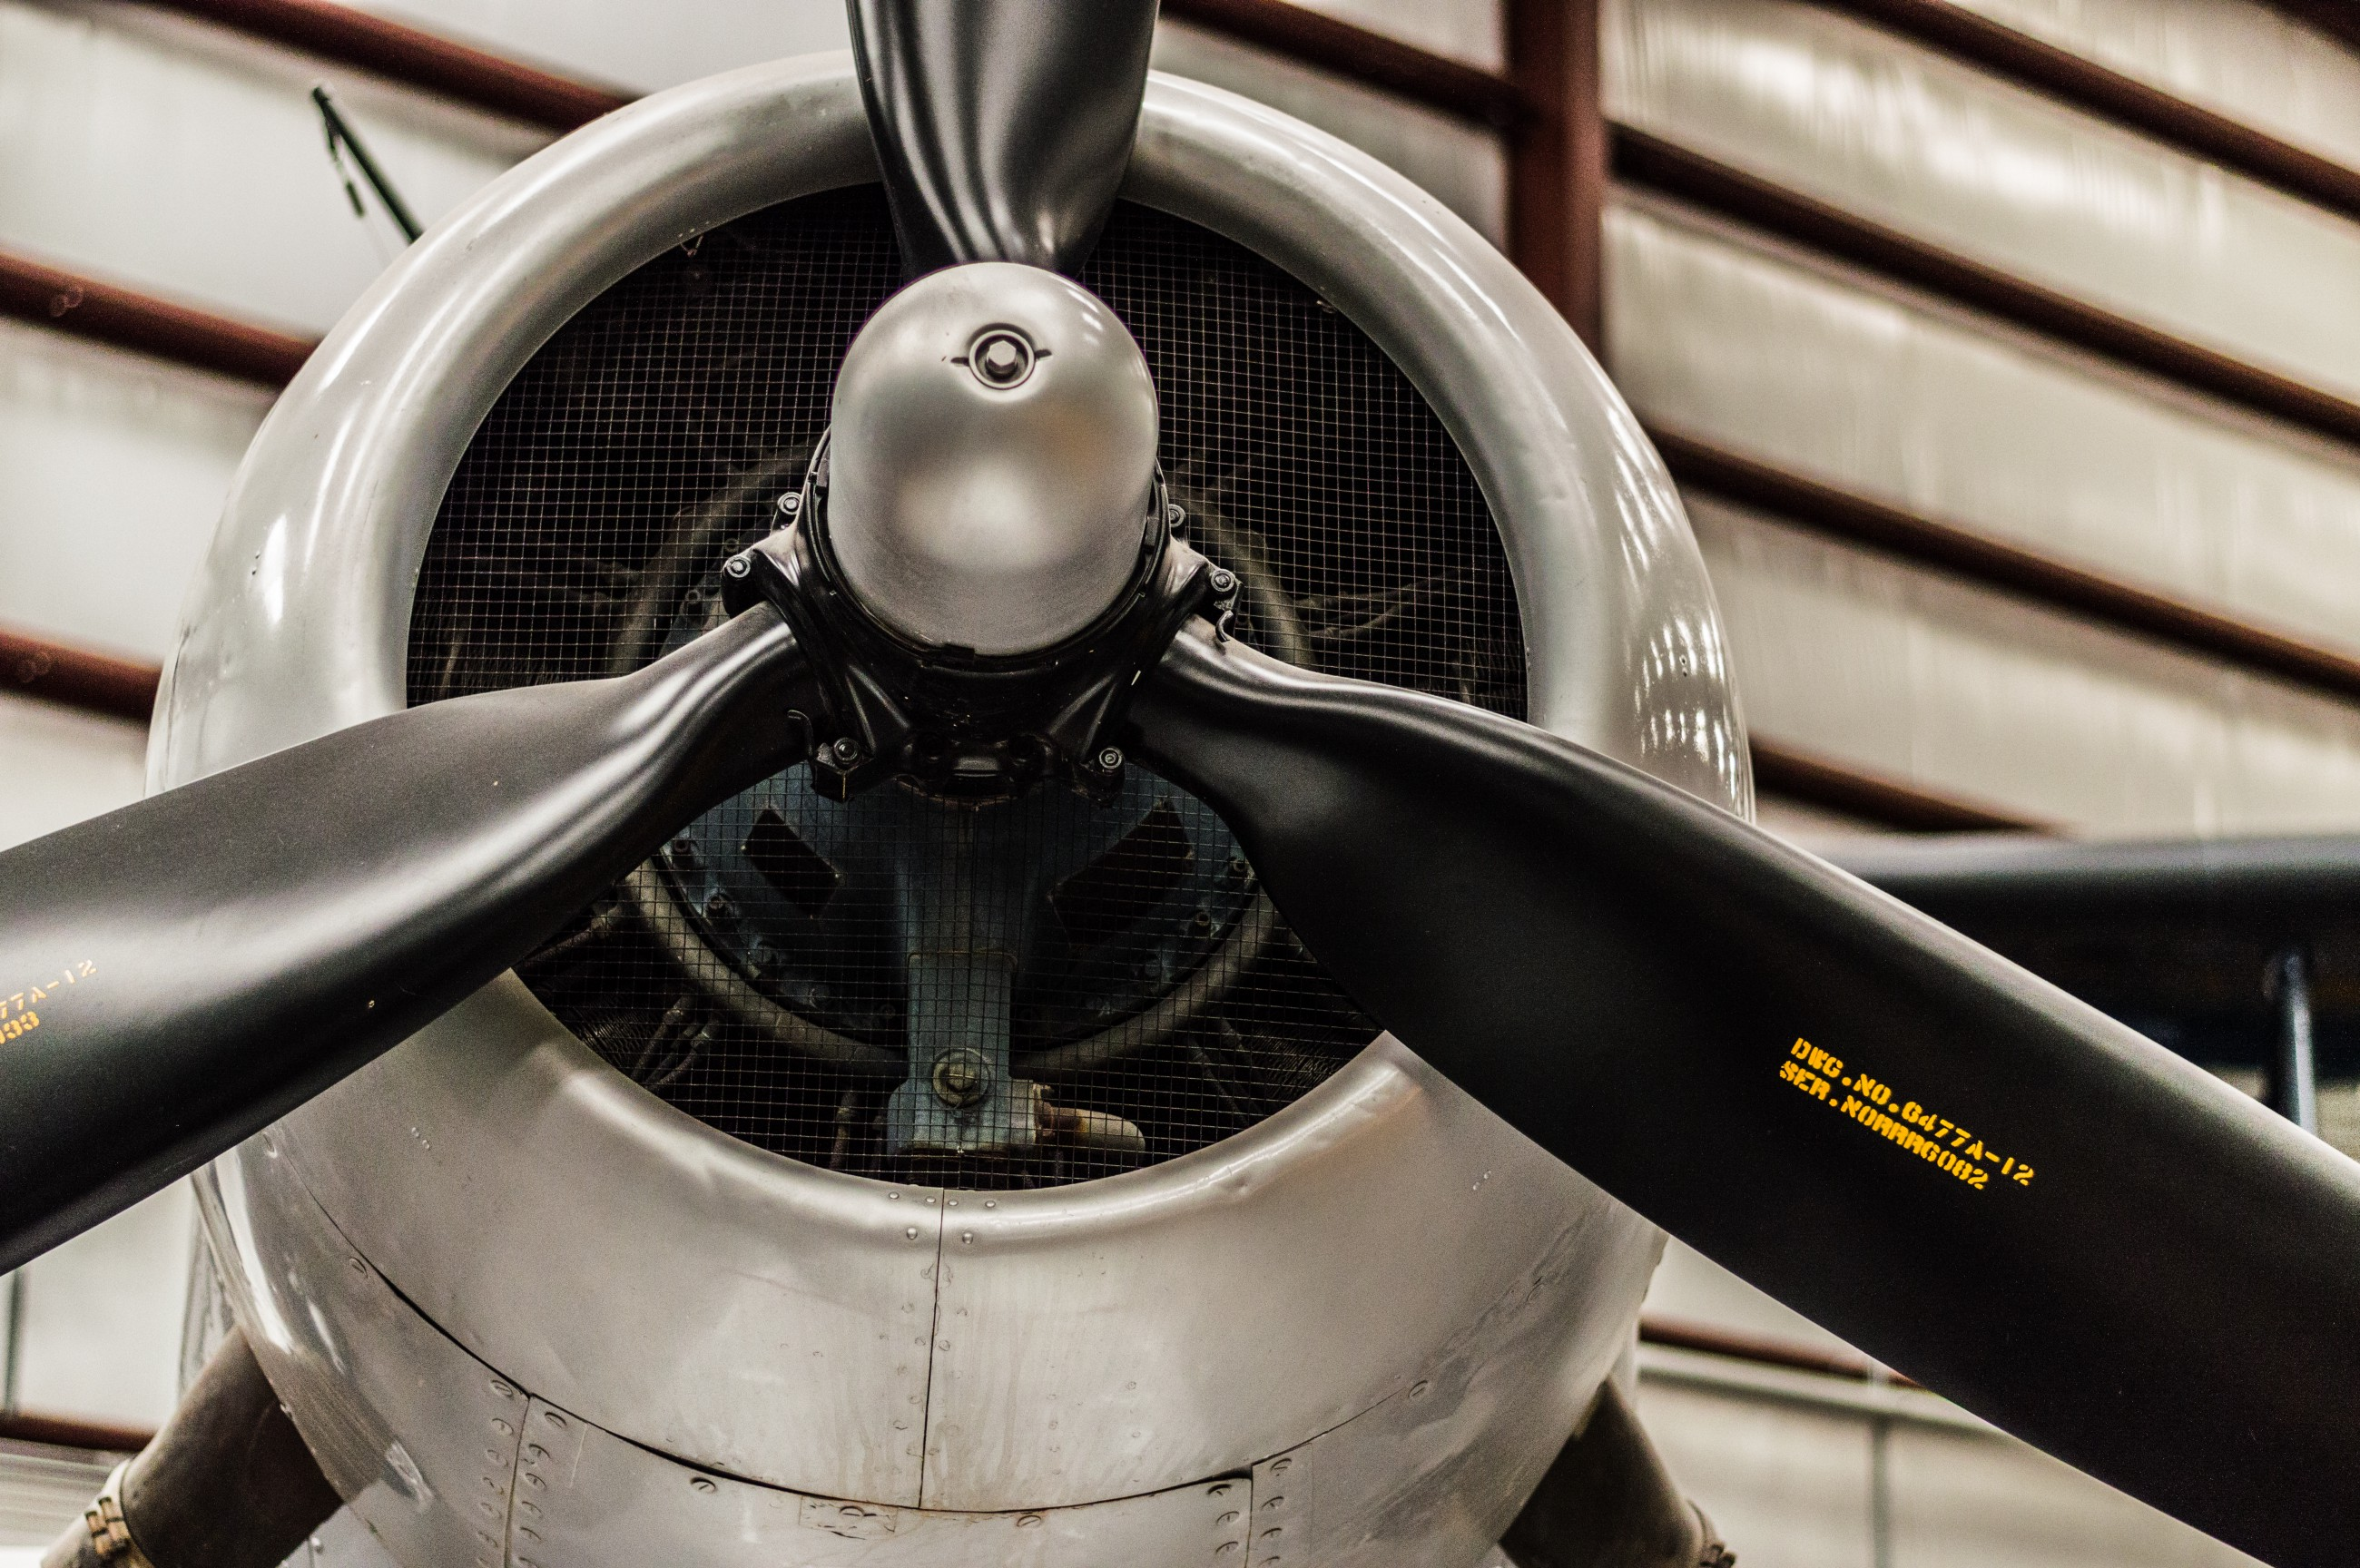 Working of a propeller